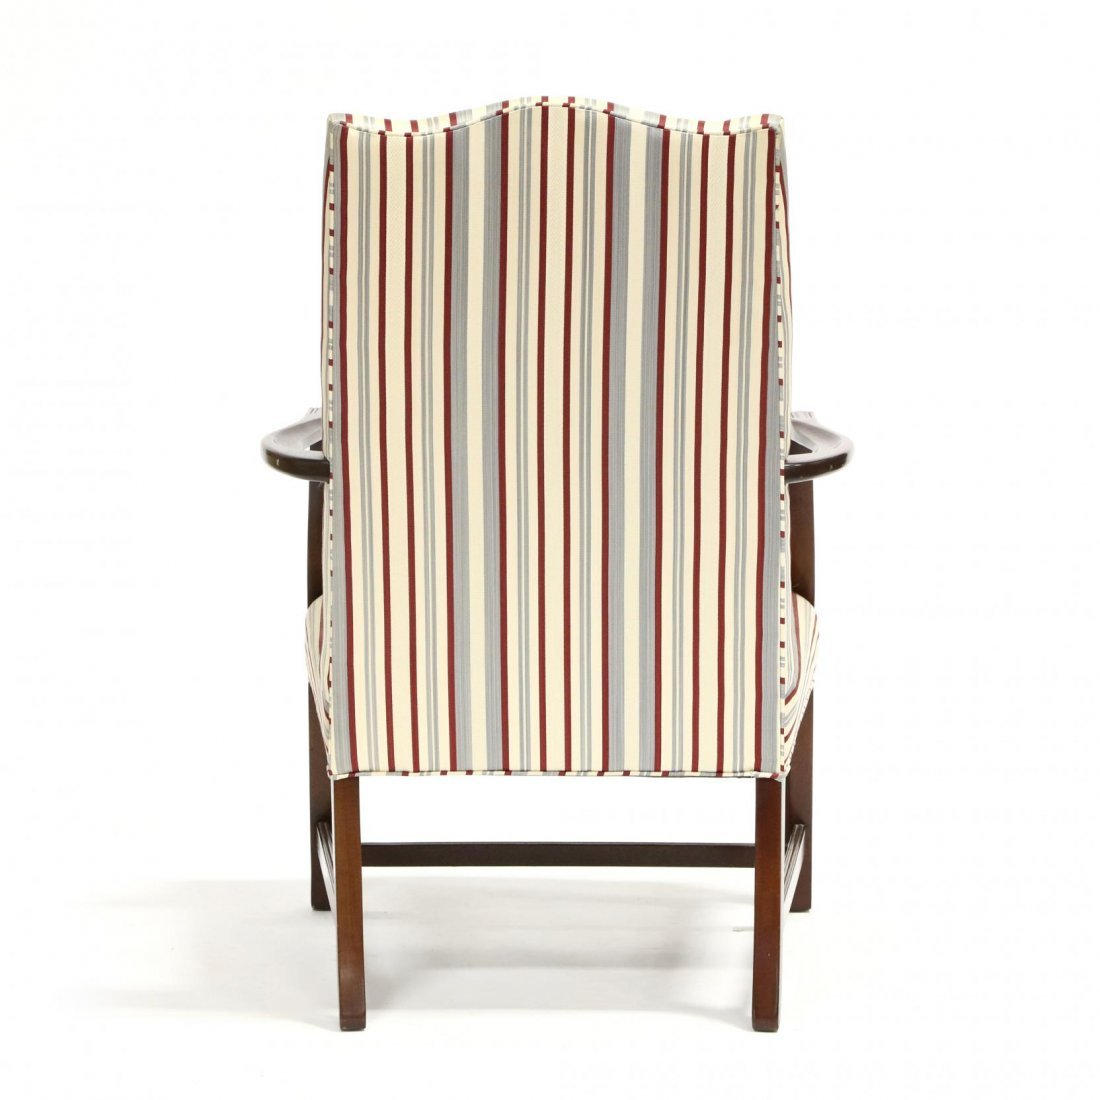 Hickory Chair Co., Chippendale Style Lolling Chair - 2